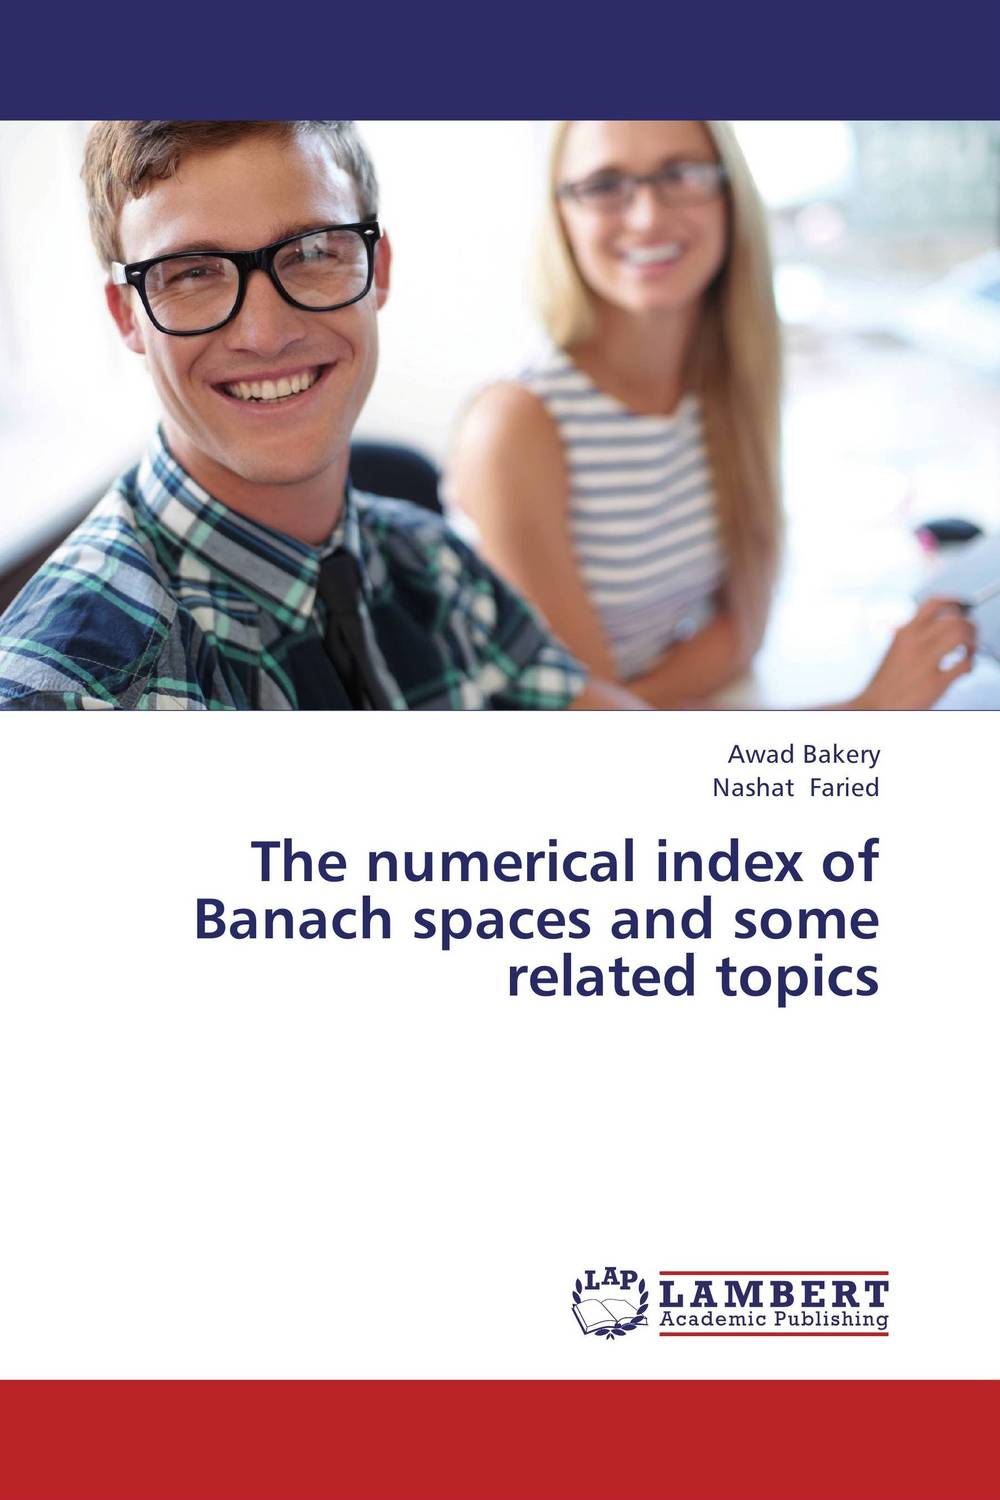 The numerical index of Banach spaces and some related topics